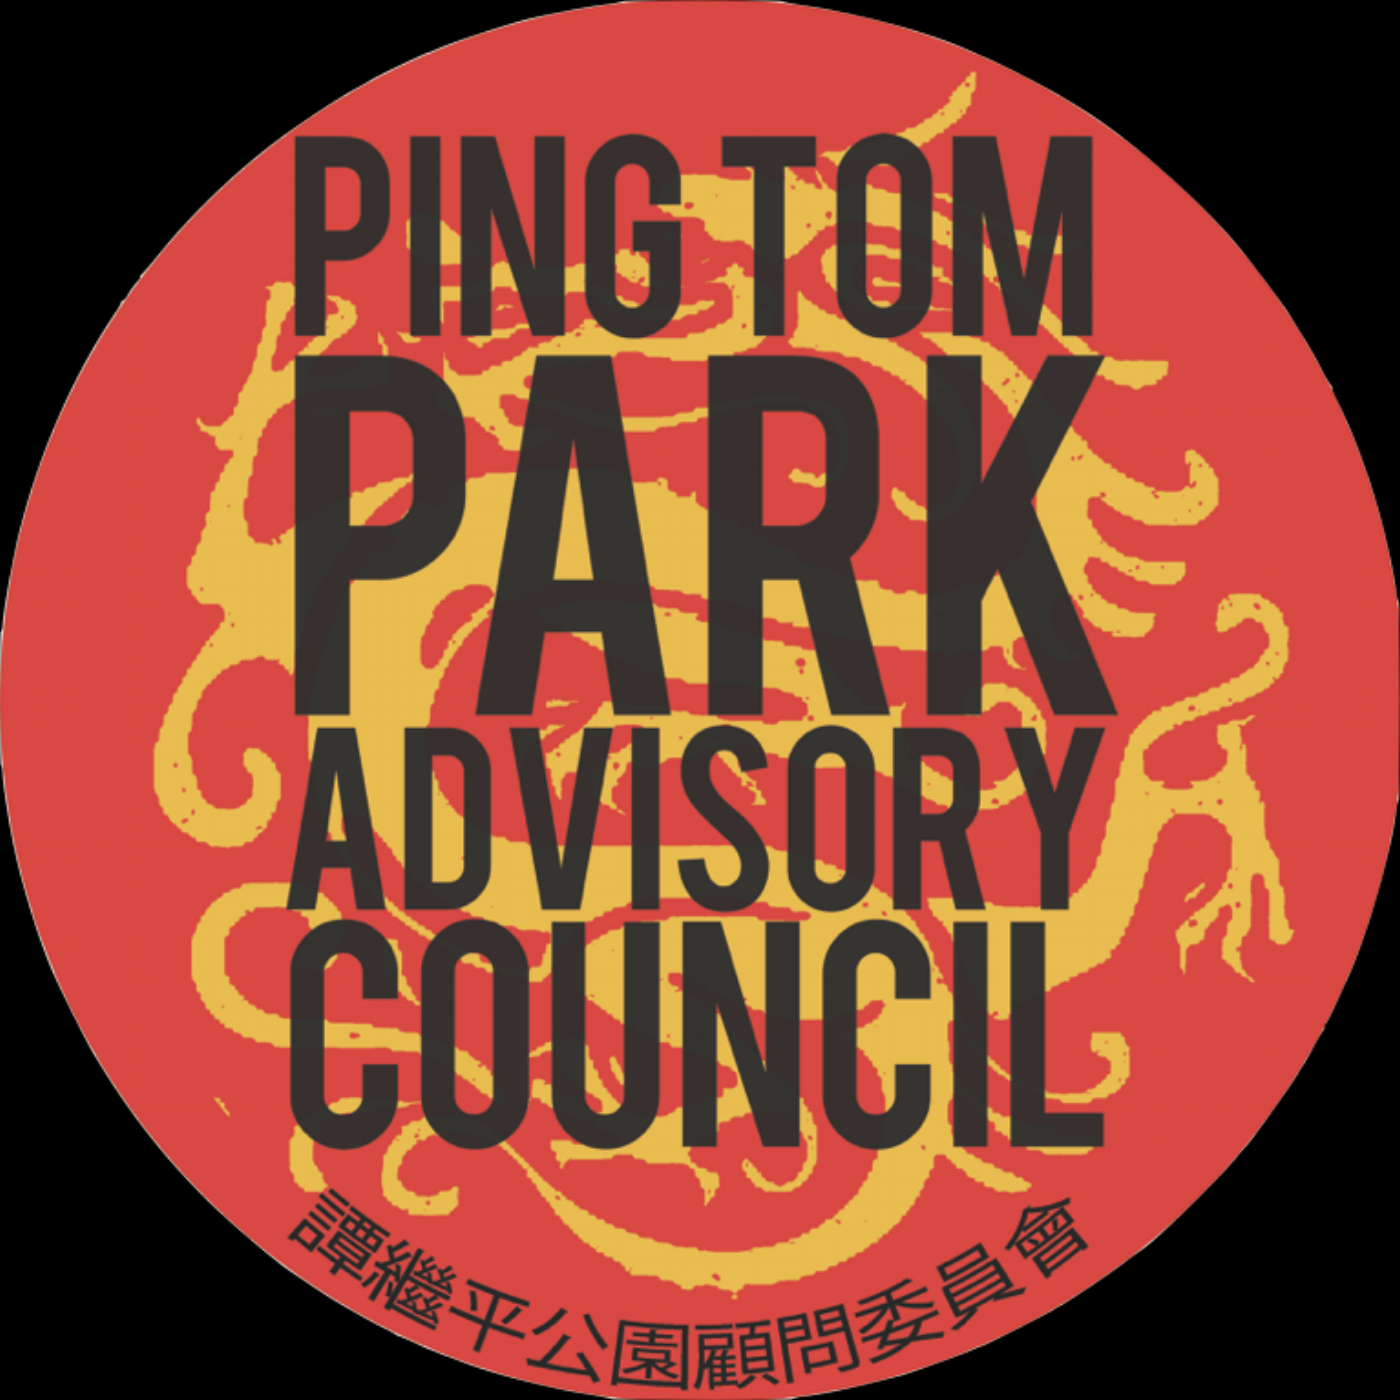 Ping Tom Park Advisory Council